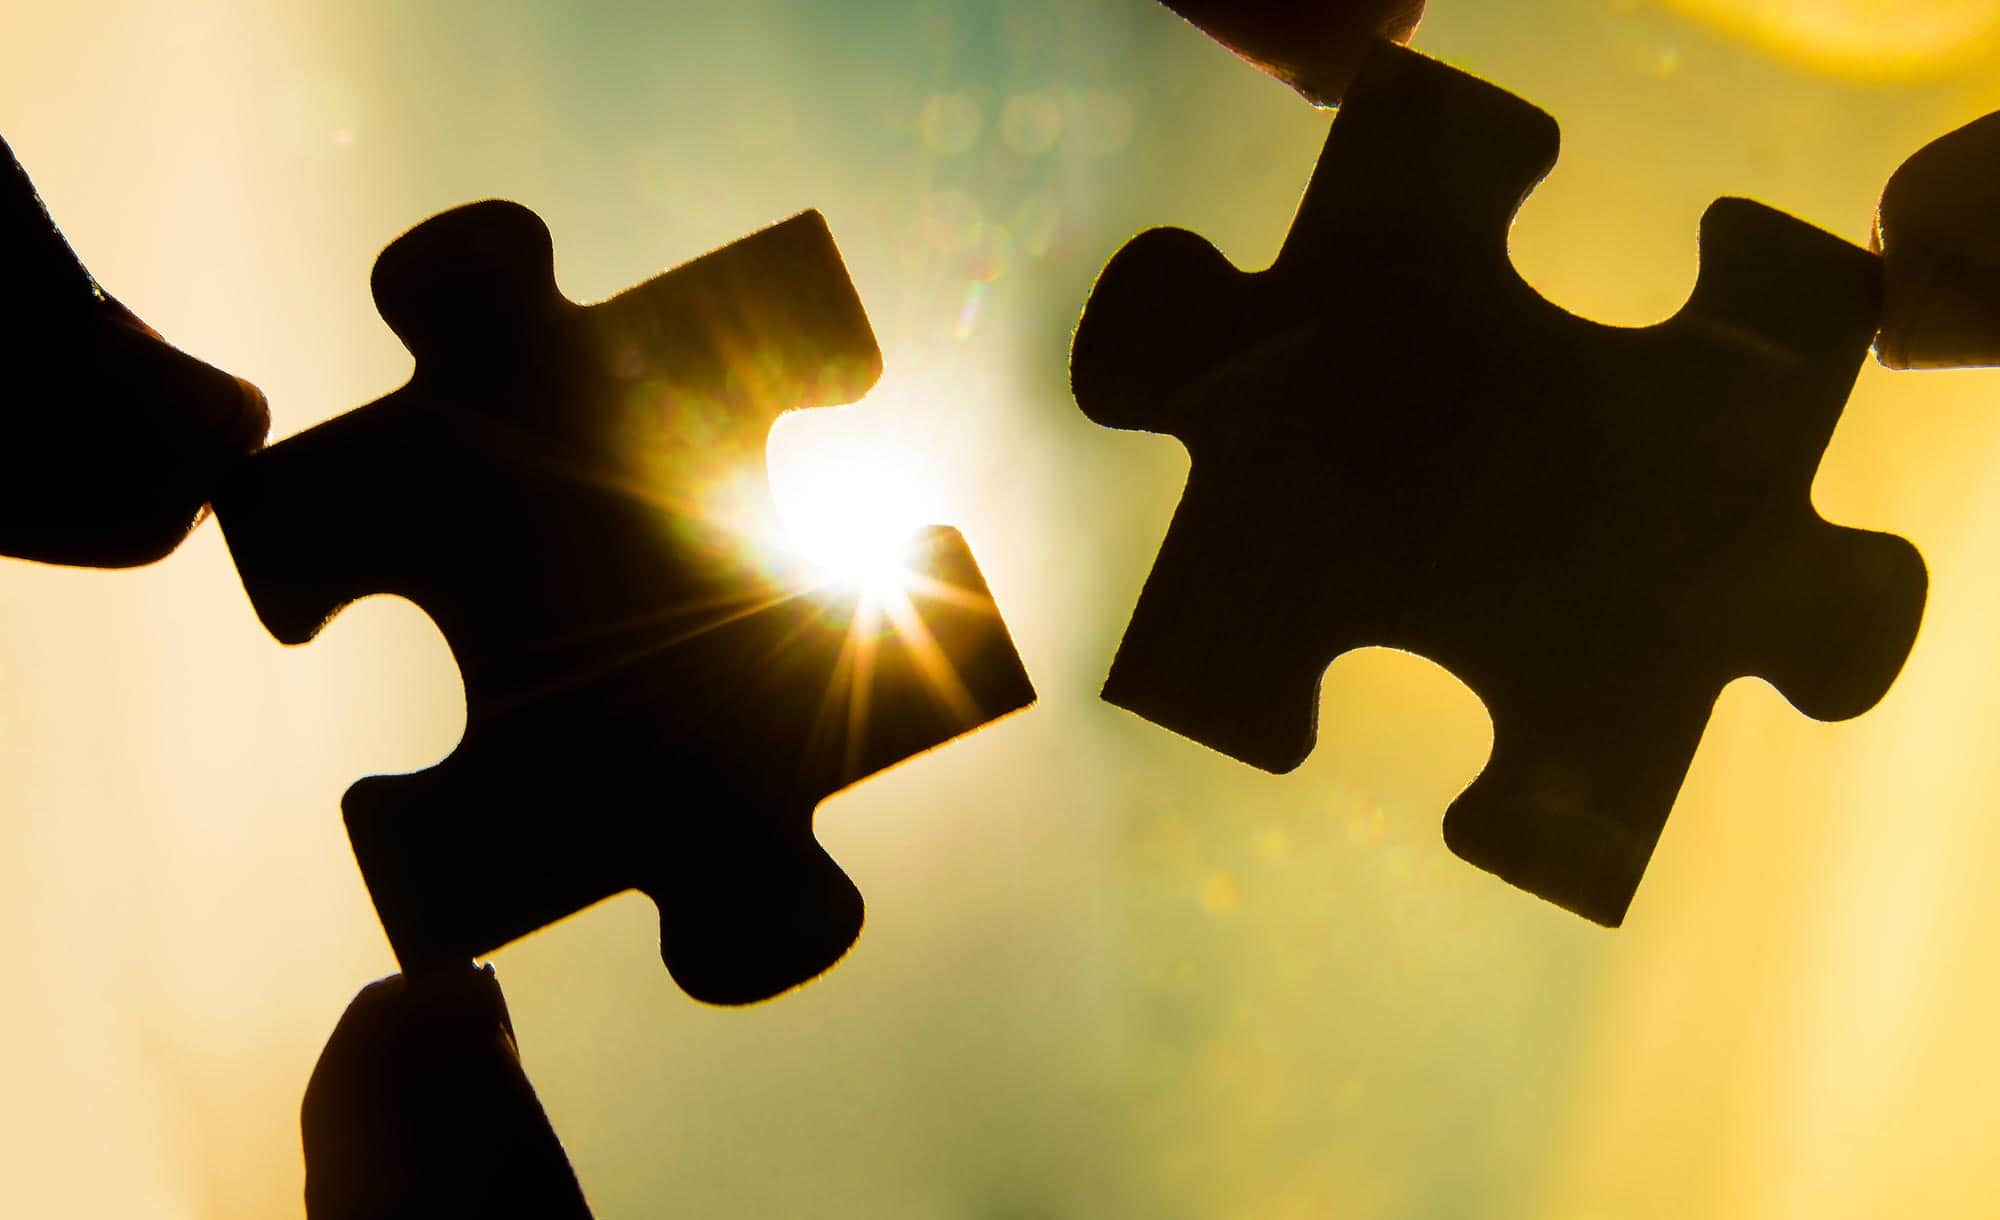 Photo of two puzzle pieces